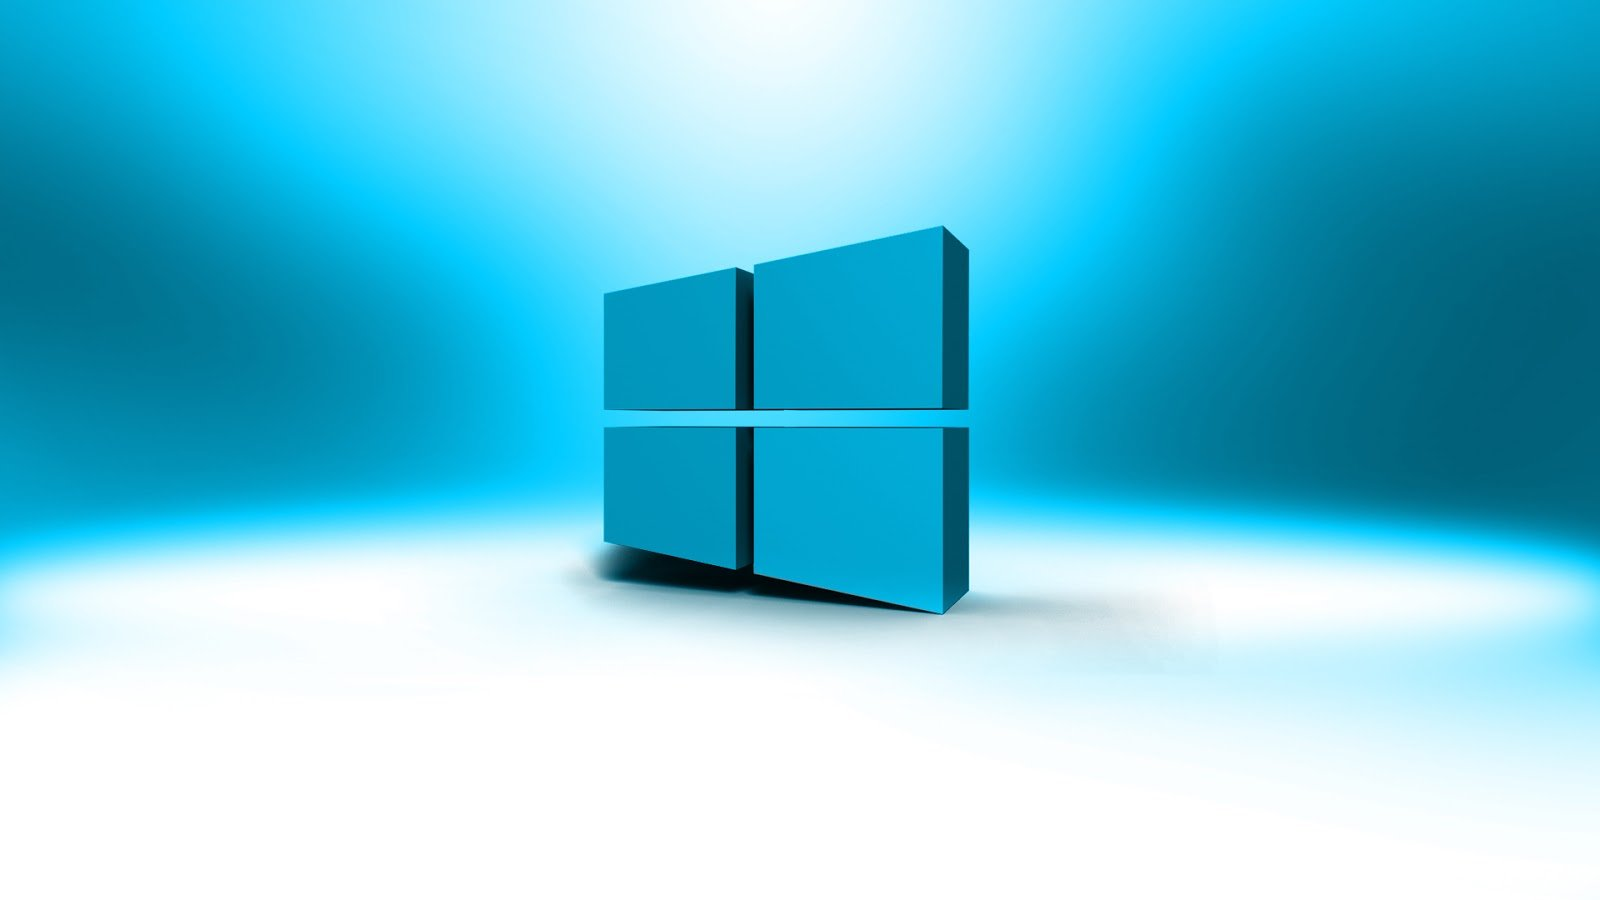 New Windows 8 Exclusive Wallpapers Windows 8 HD Wallpapers Nature 1600x900